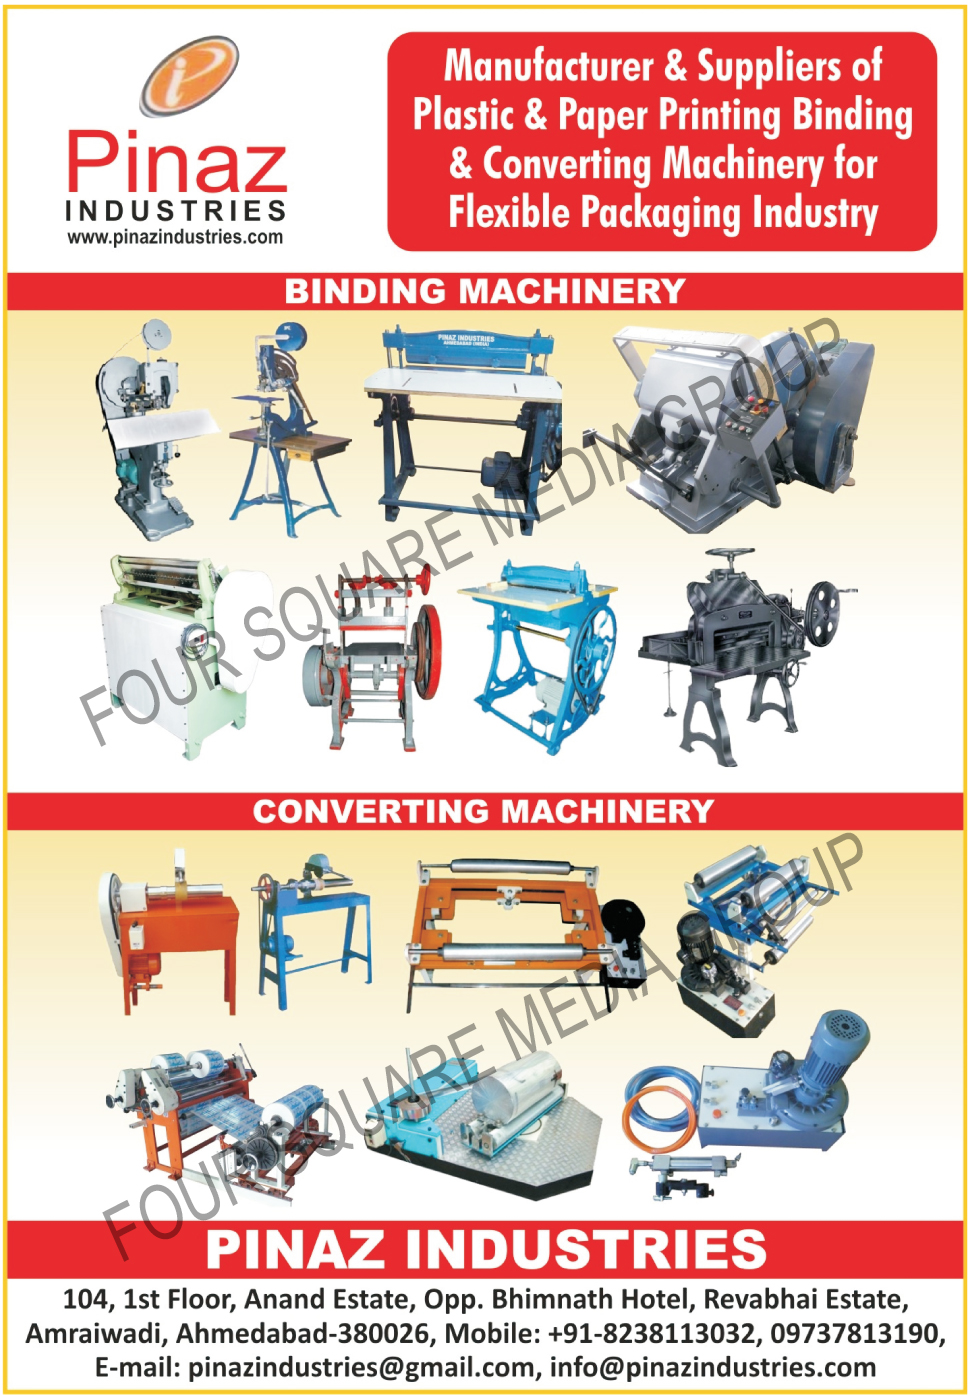 Plastic Printing Machines, Plastic Binding Machines, Plastic Converting Machines, Paper Printing Machines, Paper Binding Machines, Paper Converting Machines, Web Aligner Units, Core Cutter Machines, Core Cutting Machines, D Punch Machines, Roll Wrapping Machines, Slitter Rewinder Machines, Unwinder Systems, SRA, Lamination Coating Machines, Hand And Treadle Drive Book Stitching Machines, Auto Book Stitching Machines, Dab Press Machines, Punching Machines, Calendar Rimming Machines, Power Operated File Punching Machines, Power Driven Spiral Punching Machines, Paper Cutting Machines, File Master Machine, Foot Operated Punching Machine, Foot Operated Cornering Machine, Unwind Frame